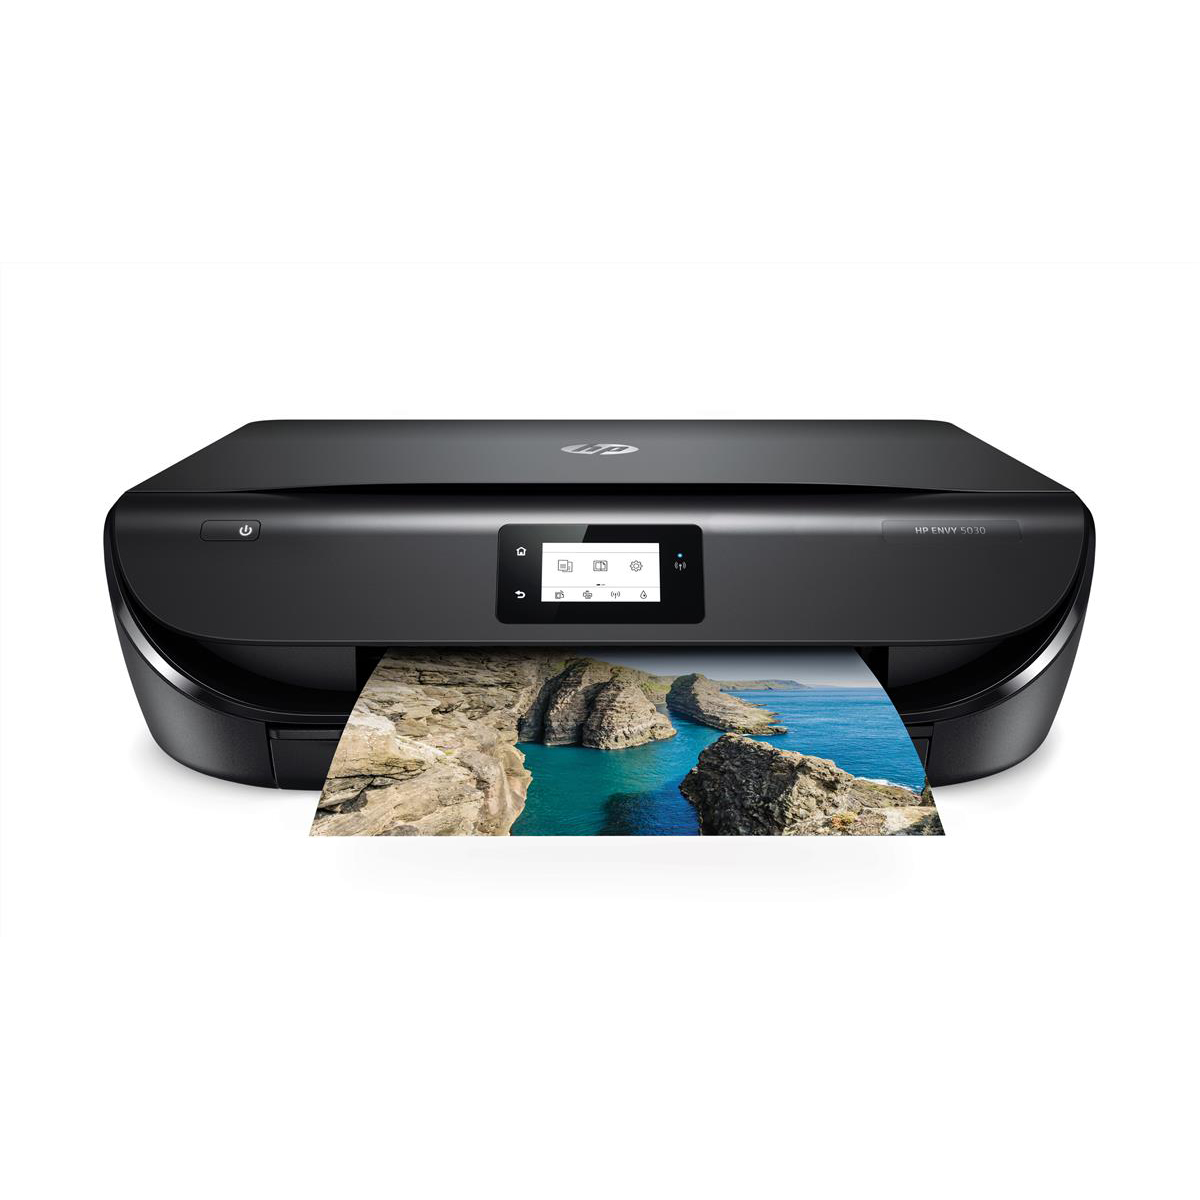 Image for HP Envy 5030 Multifunction Inkjet Printer Colour Wireless A4 Ref M2U92B#BHC